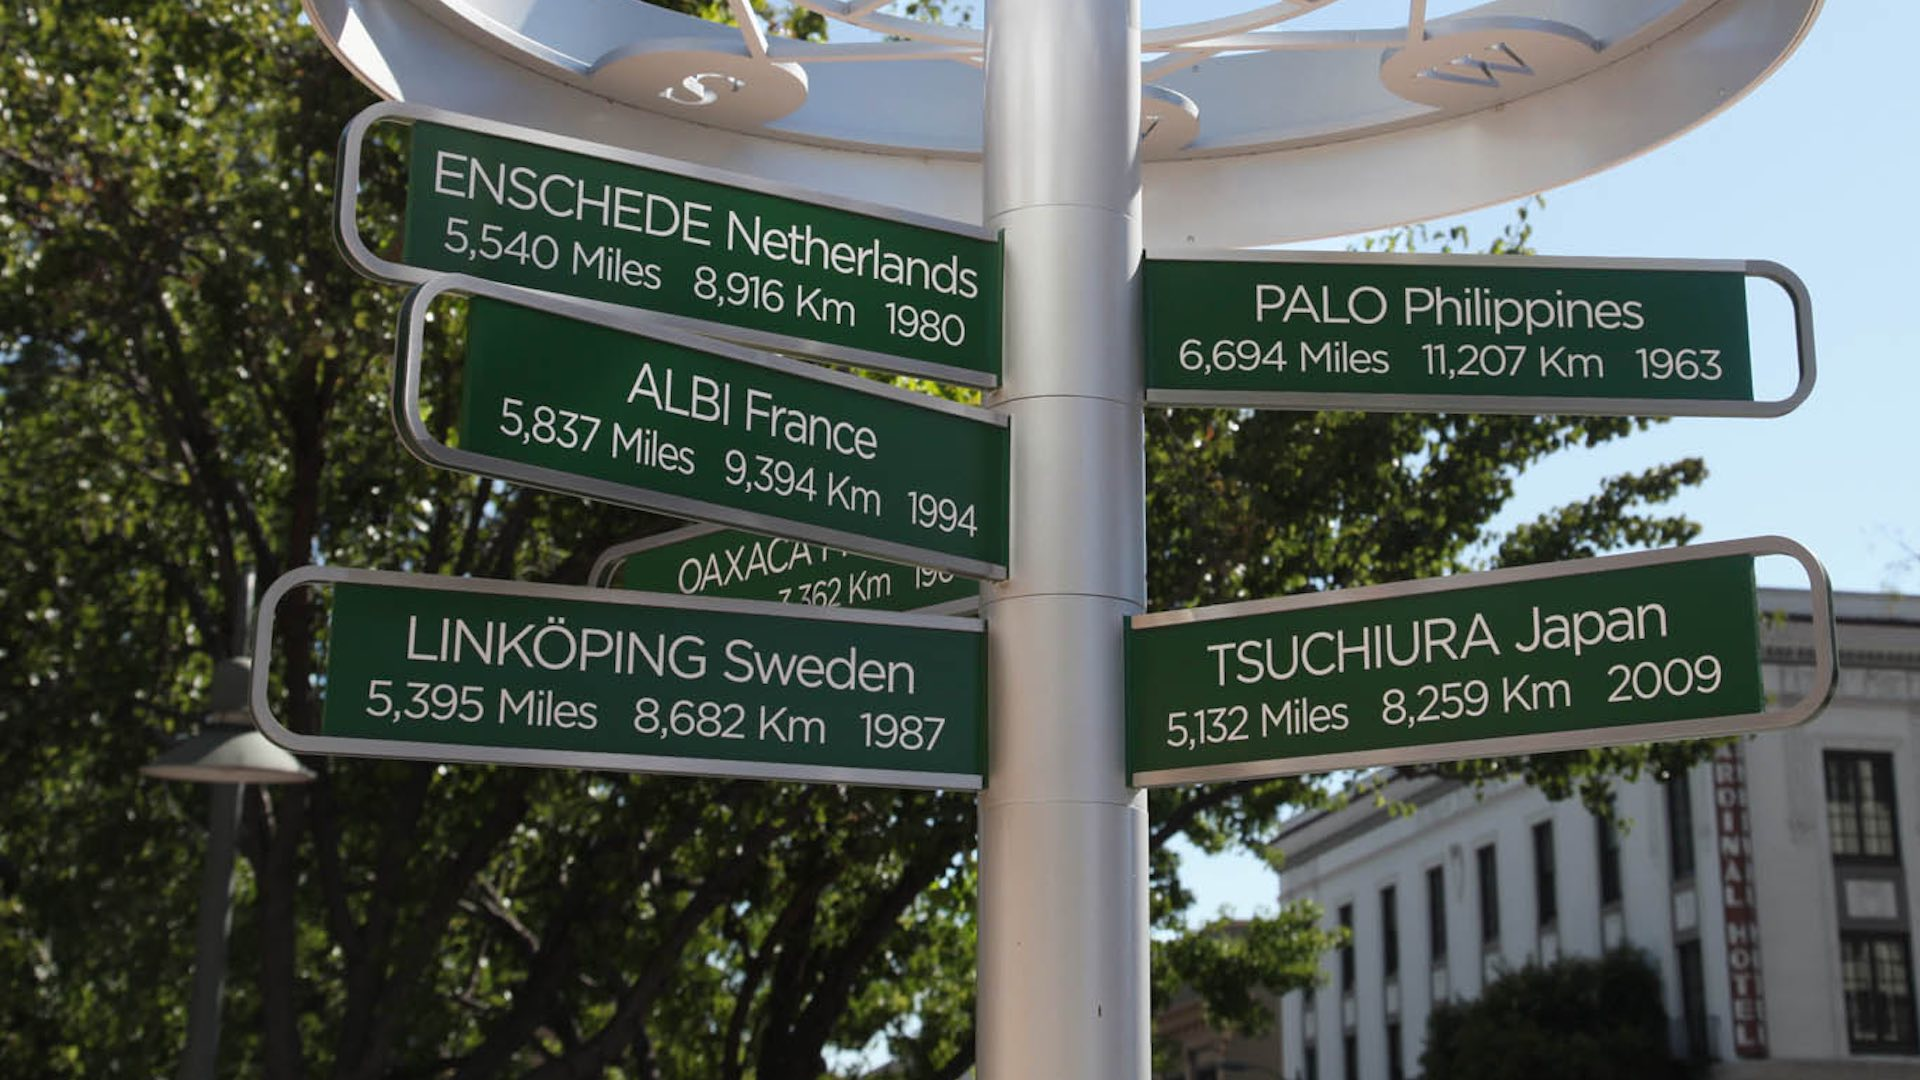 Aluminium fixture outside of City Hall displaying signs with directions and distances to various cities in the world, with the Cardinal Hotel in the background